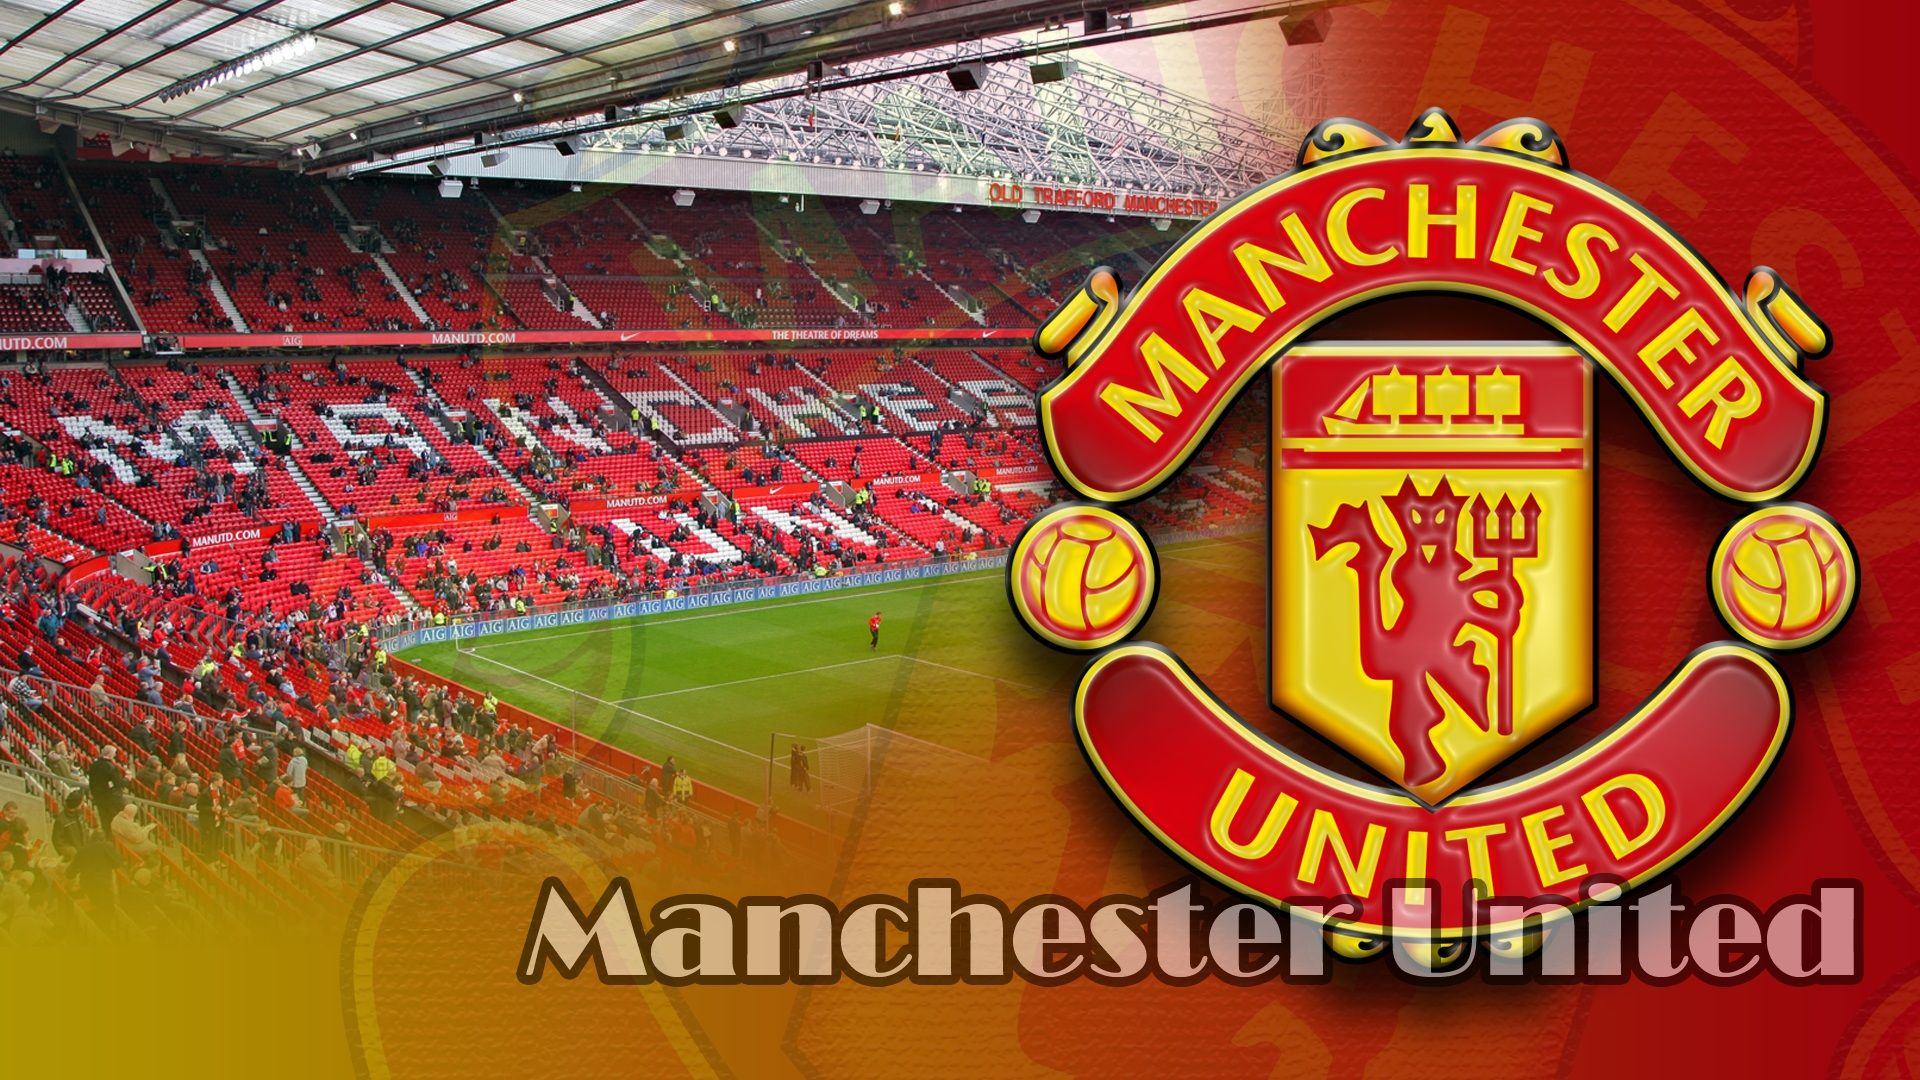 Gmail background themes download - Download Mobile Wallpaper Sports Logos Football Manchester